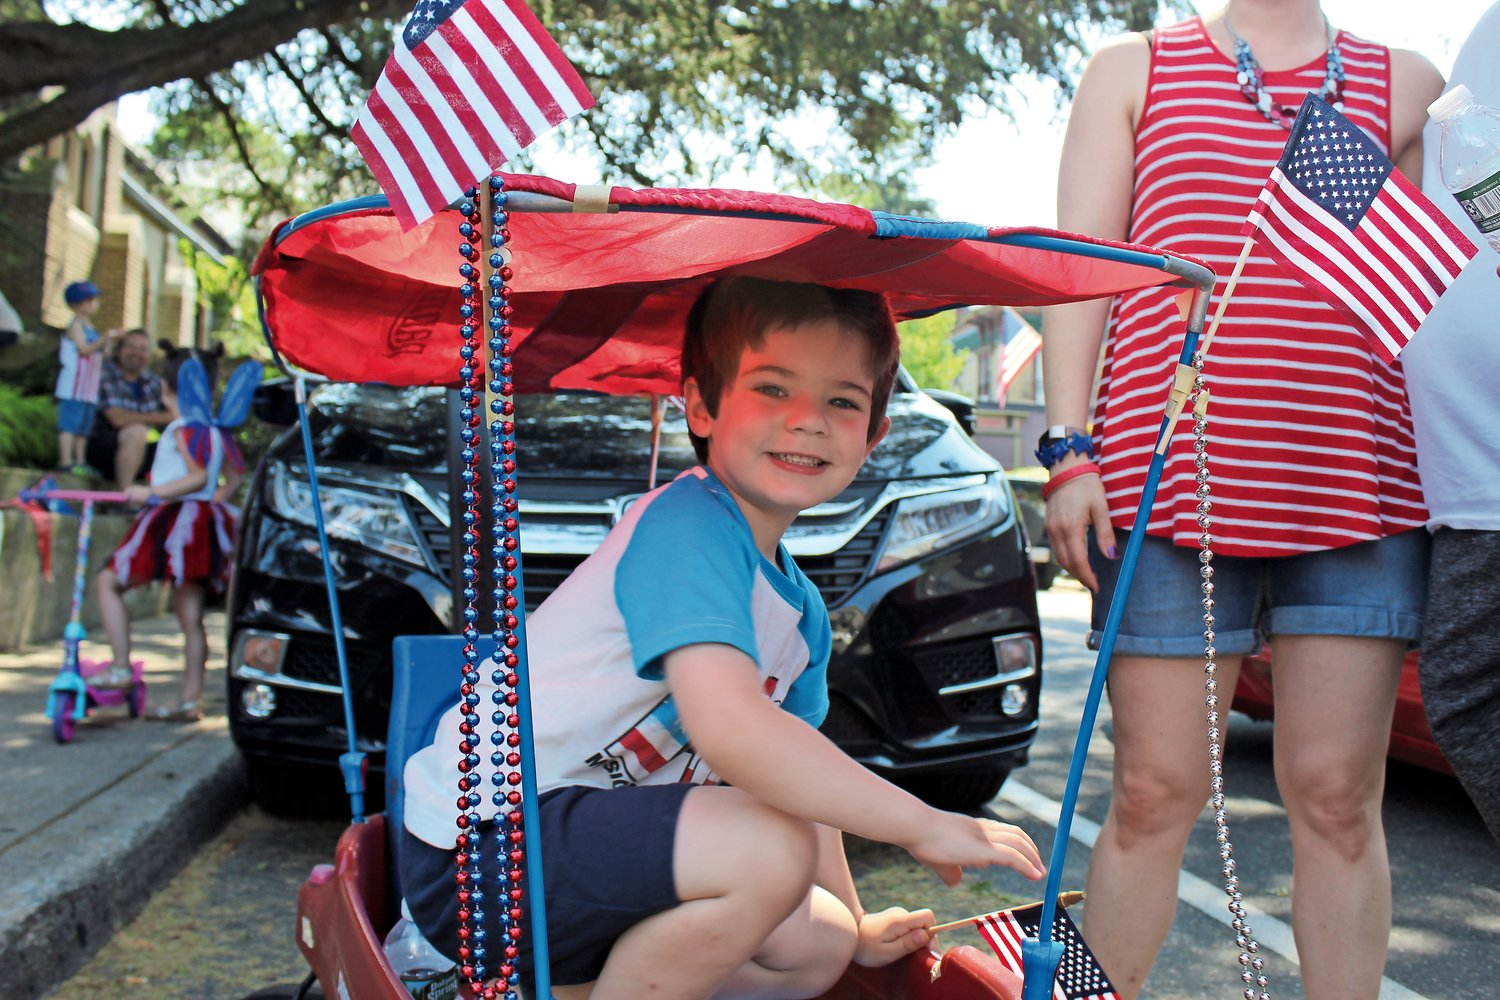 Evan D'Agostino, 4, arrived at Sea Cliff's Independence Day celebration in style in his wagon, which was decked out in American flags and colorful beads.